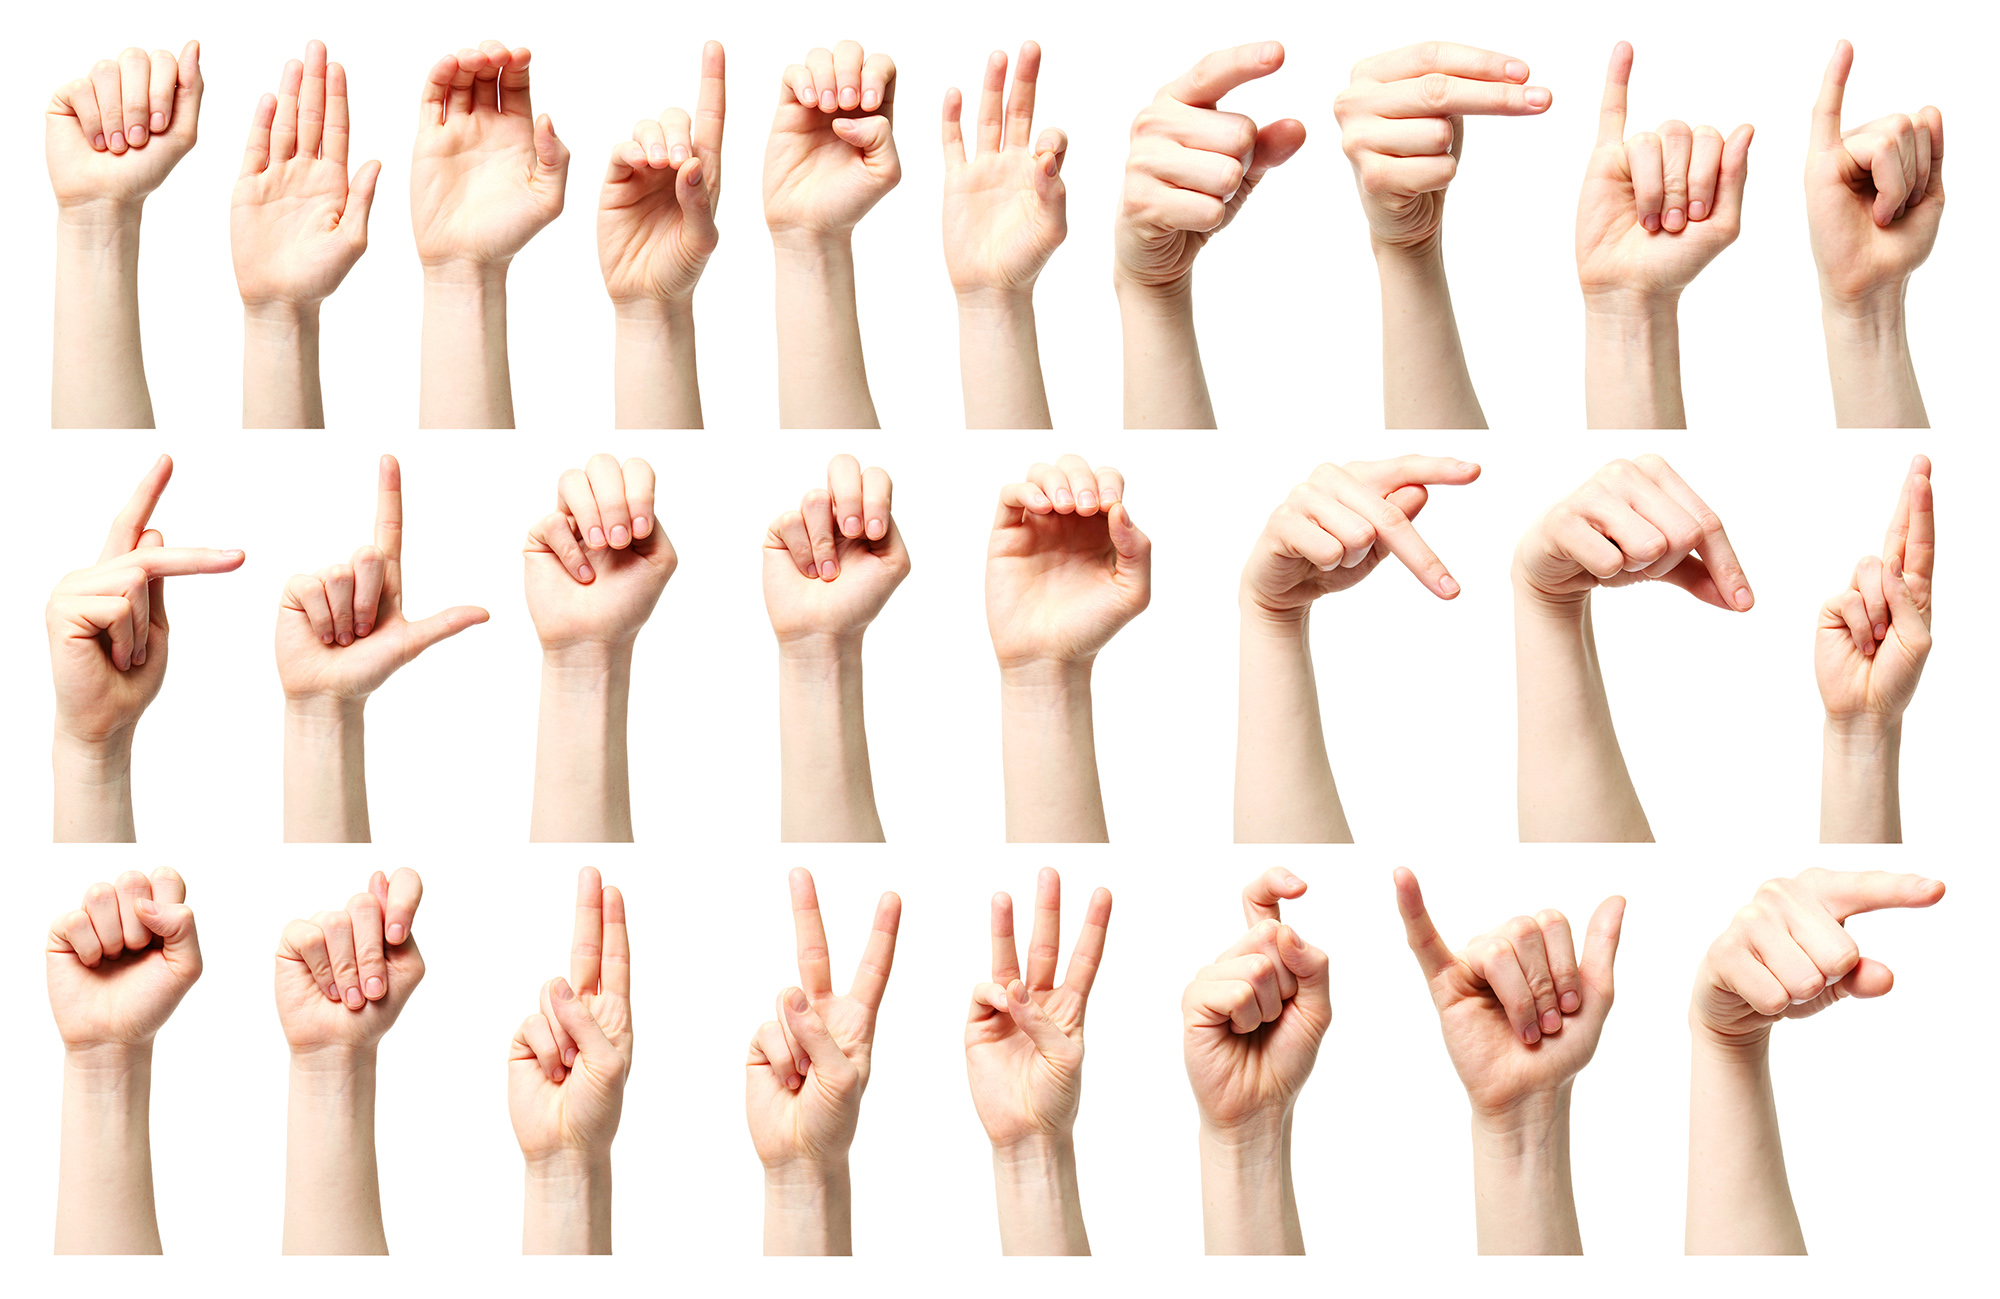 Hands signing the alphabet in American Sign Language.